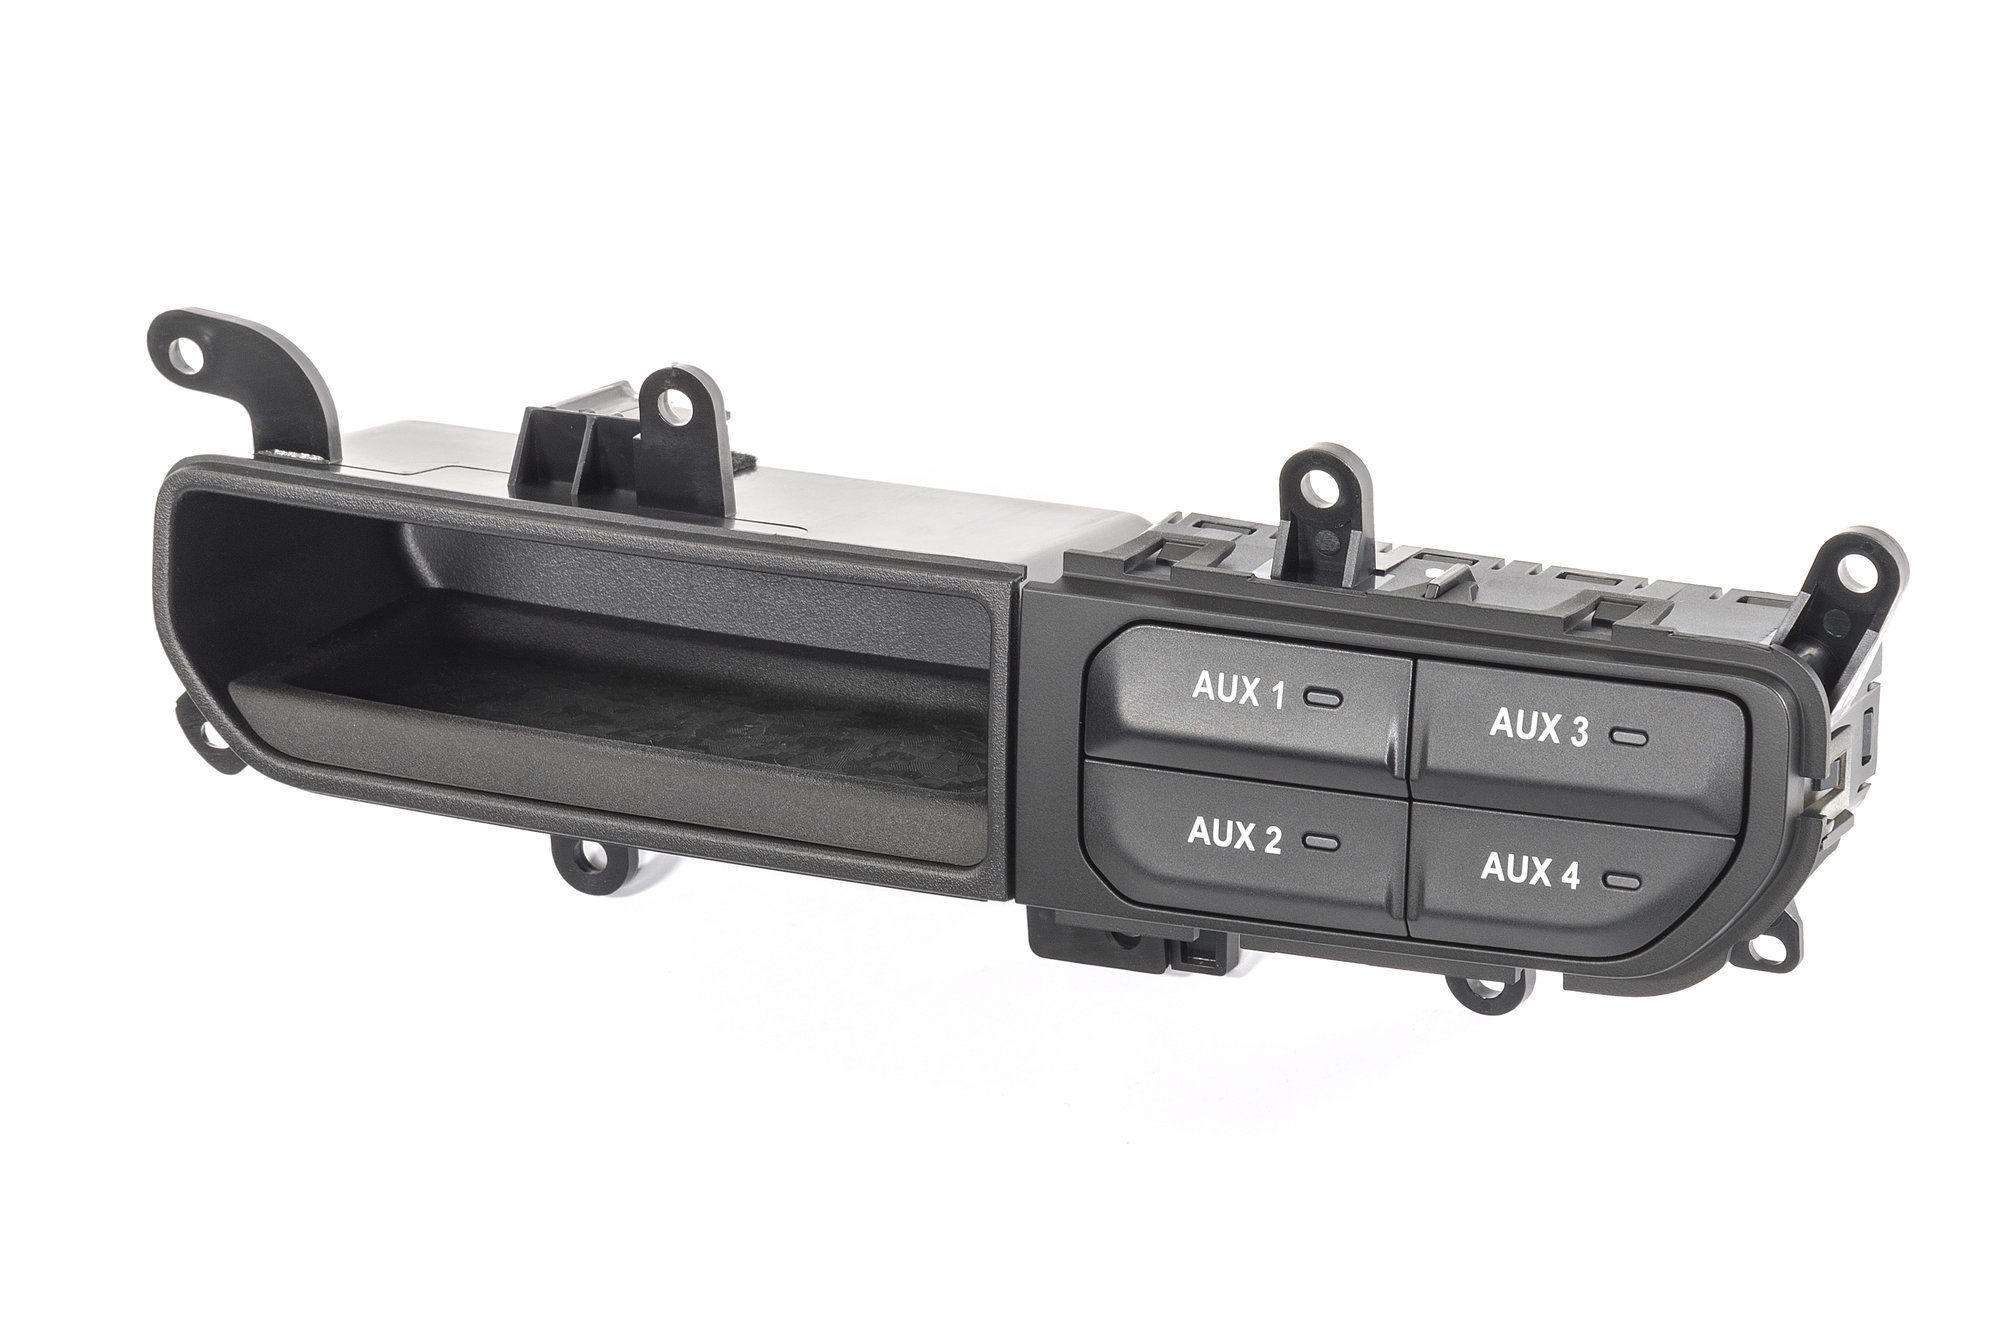 hight resolution of mopar 82215190 auxiliary switch bank for 18 19 jeep wrangler jl quadratec